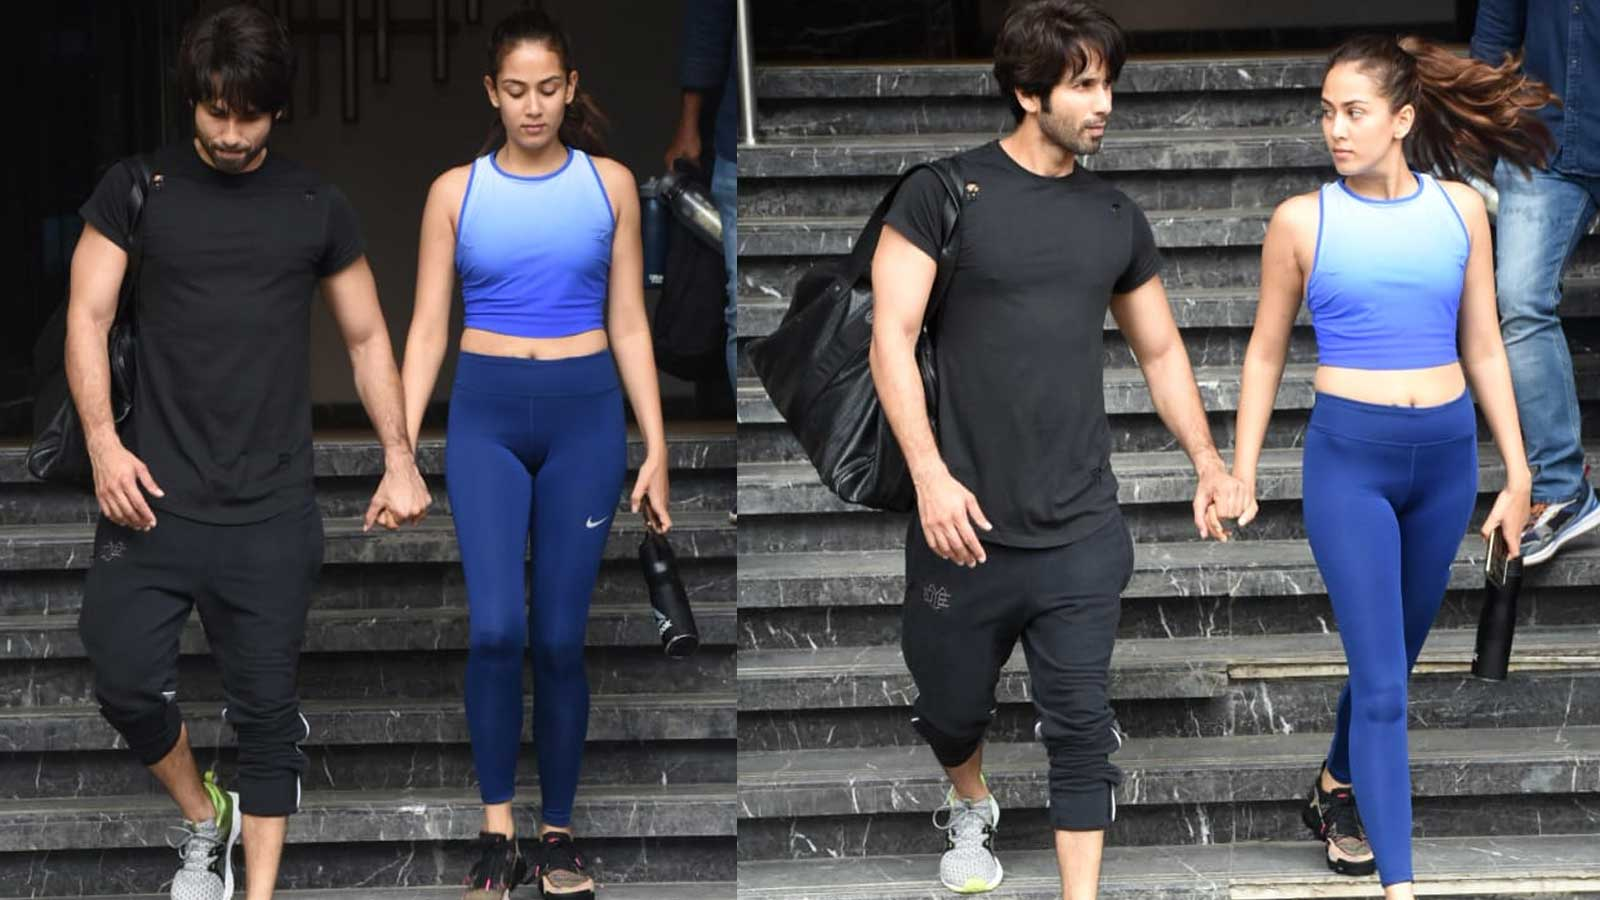 Mira Rajput and Shahid Kapoor walk hand-in-hand as they leave gym together